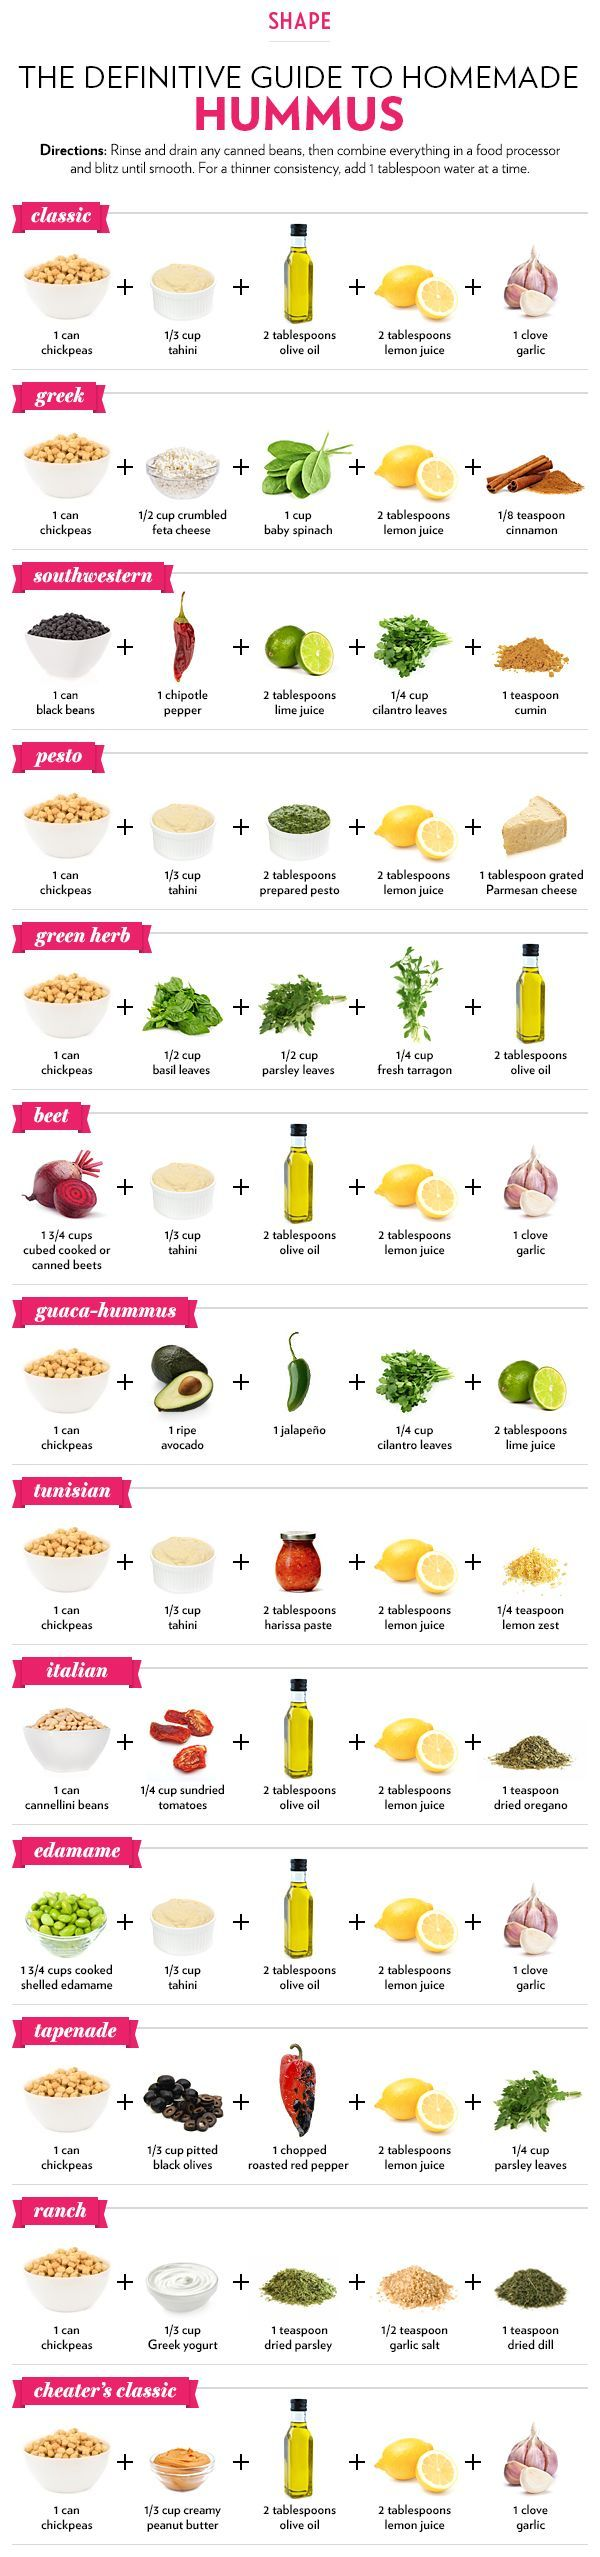 The Guide to Homemade Hummus